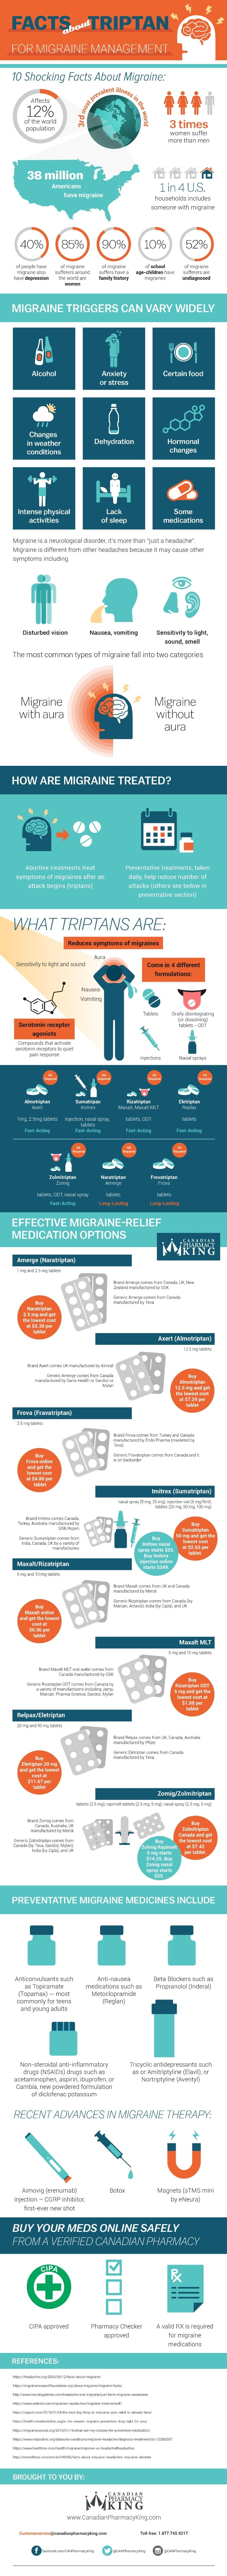 Facts about Triptans in Migraine Management